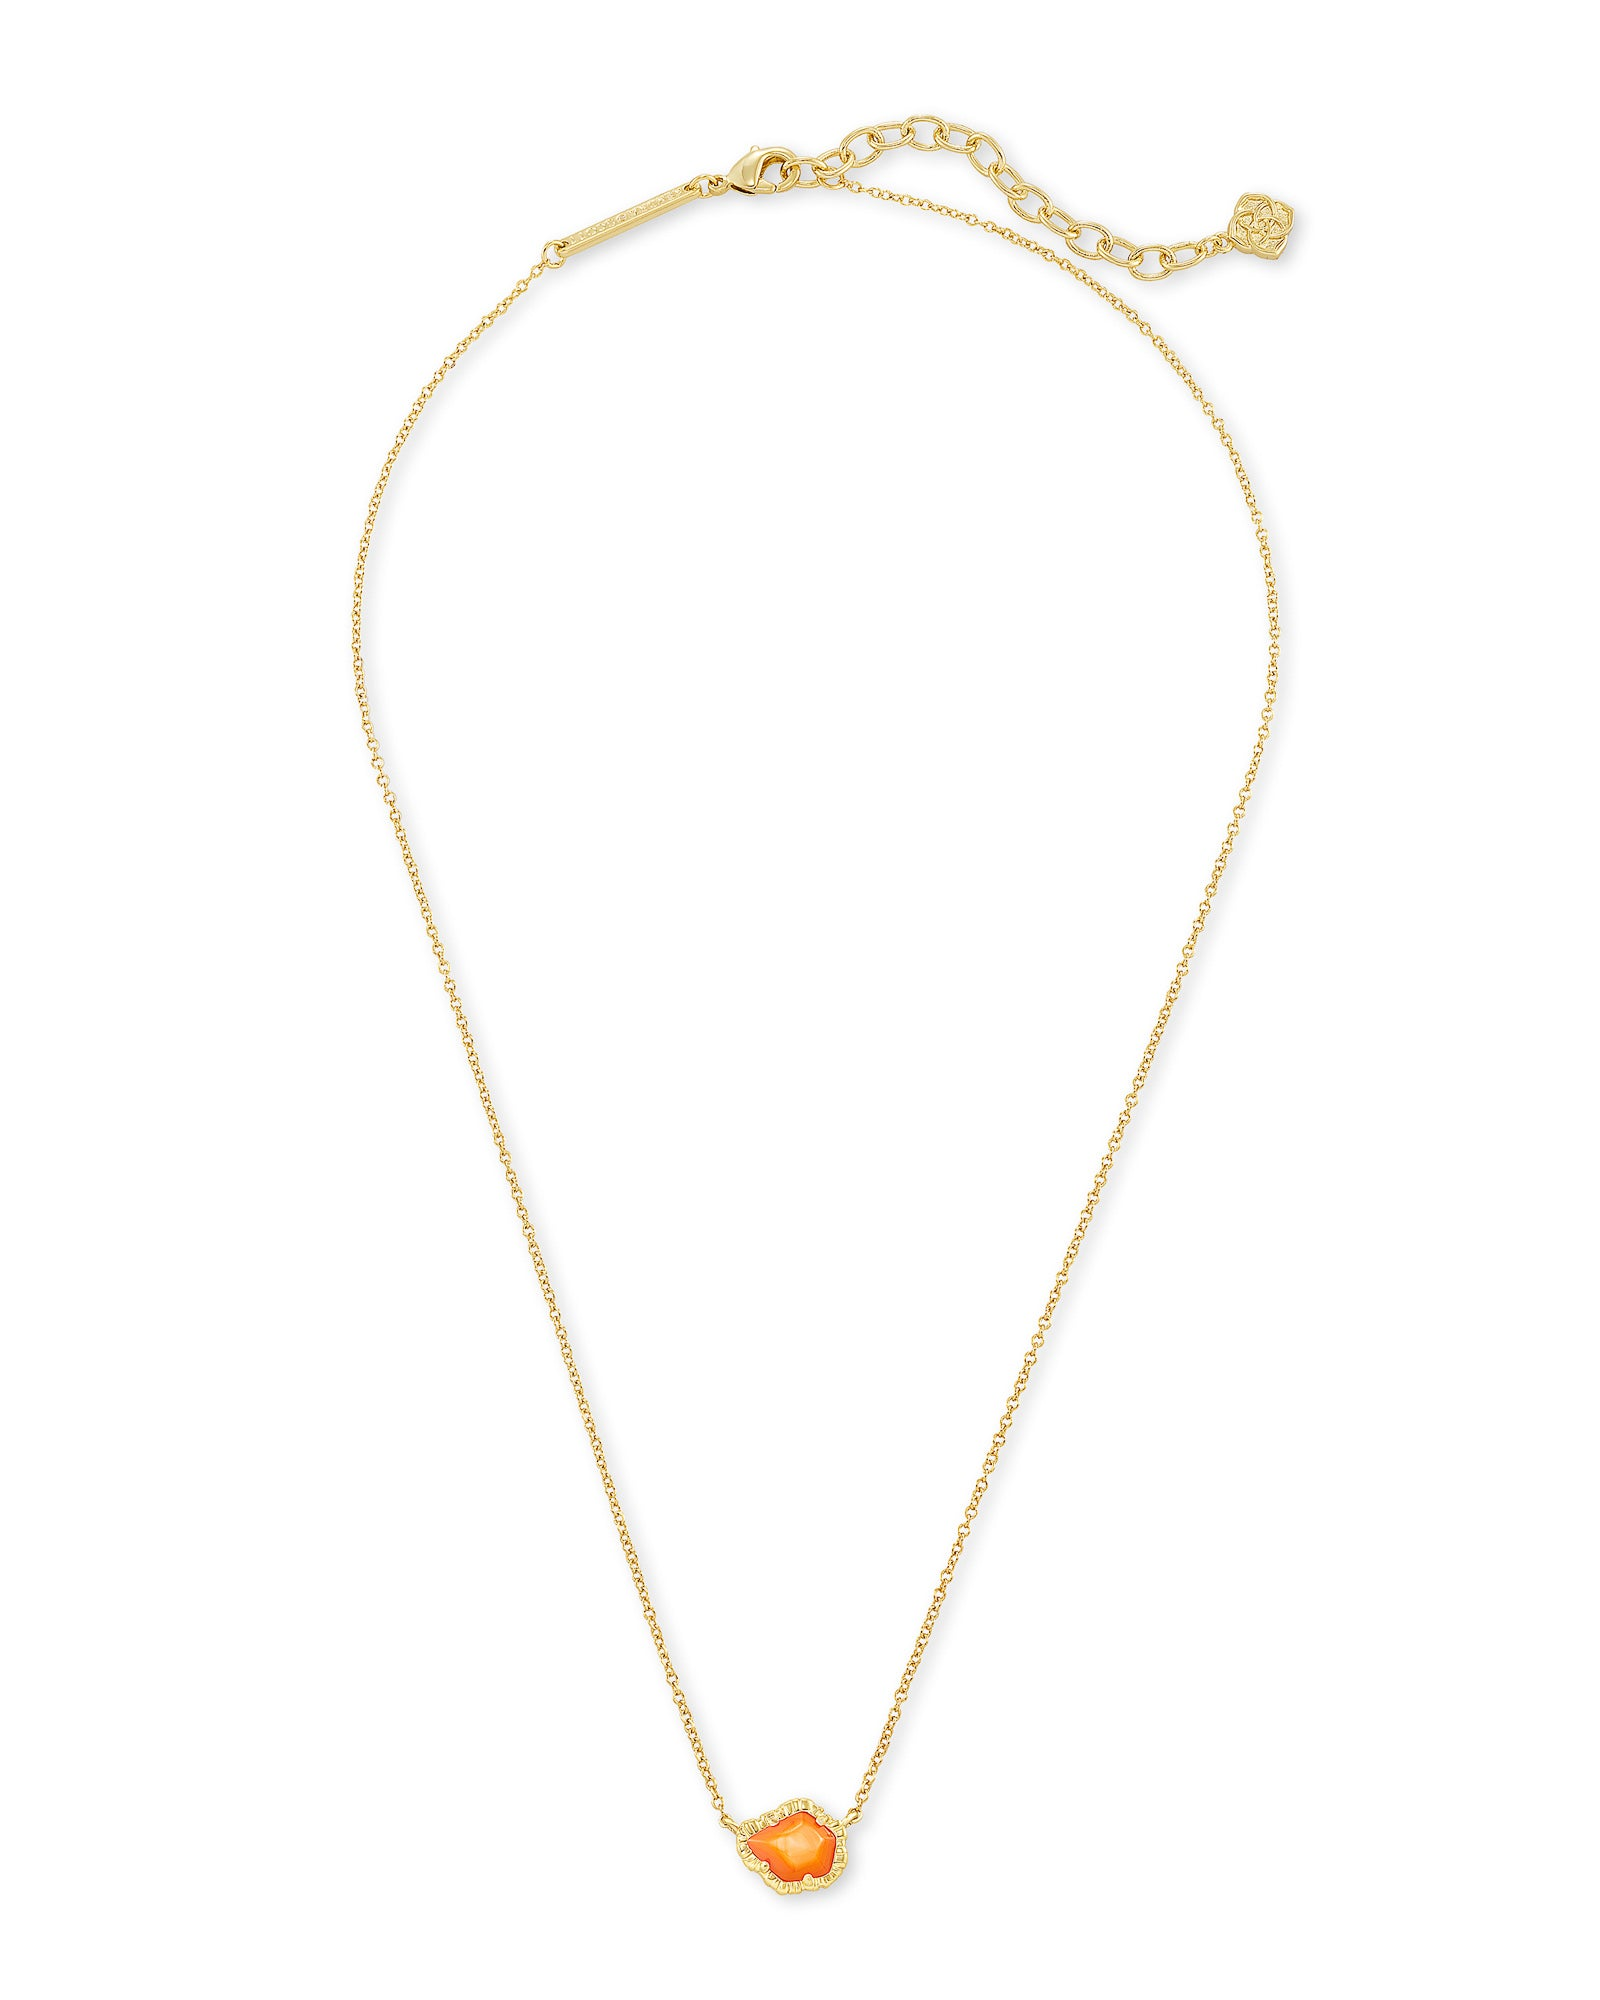 Tessa Small Pendant Necklace in Gold Papaya Mother of Pearl